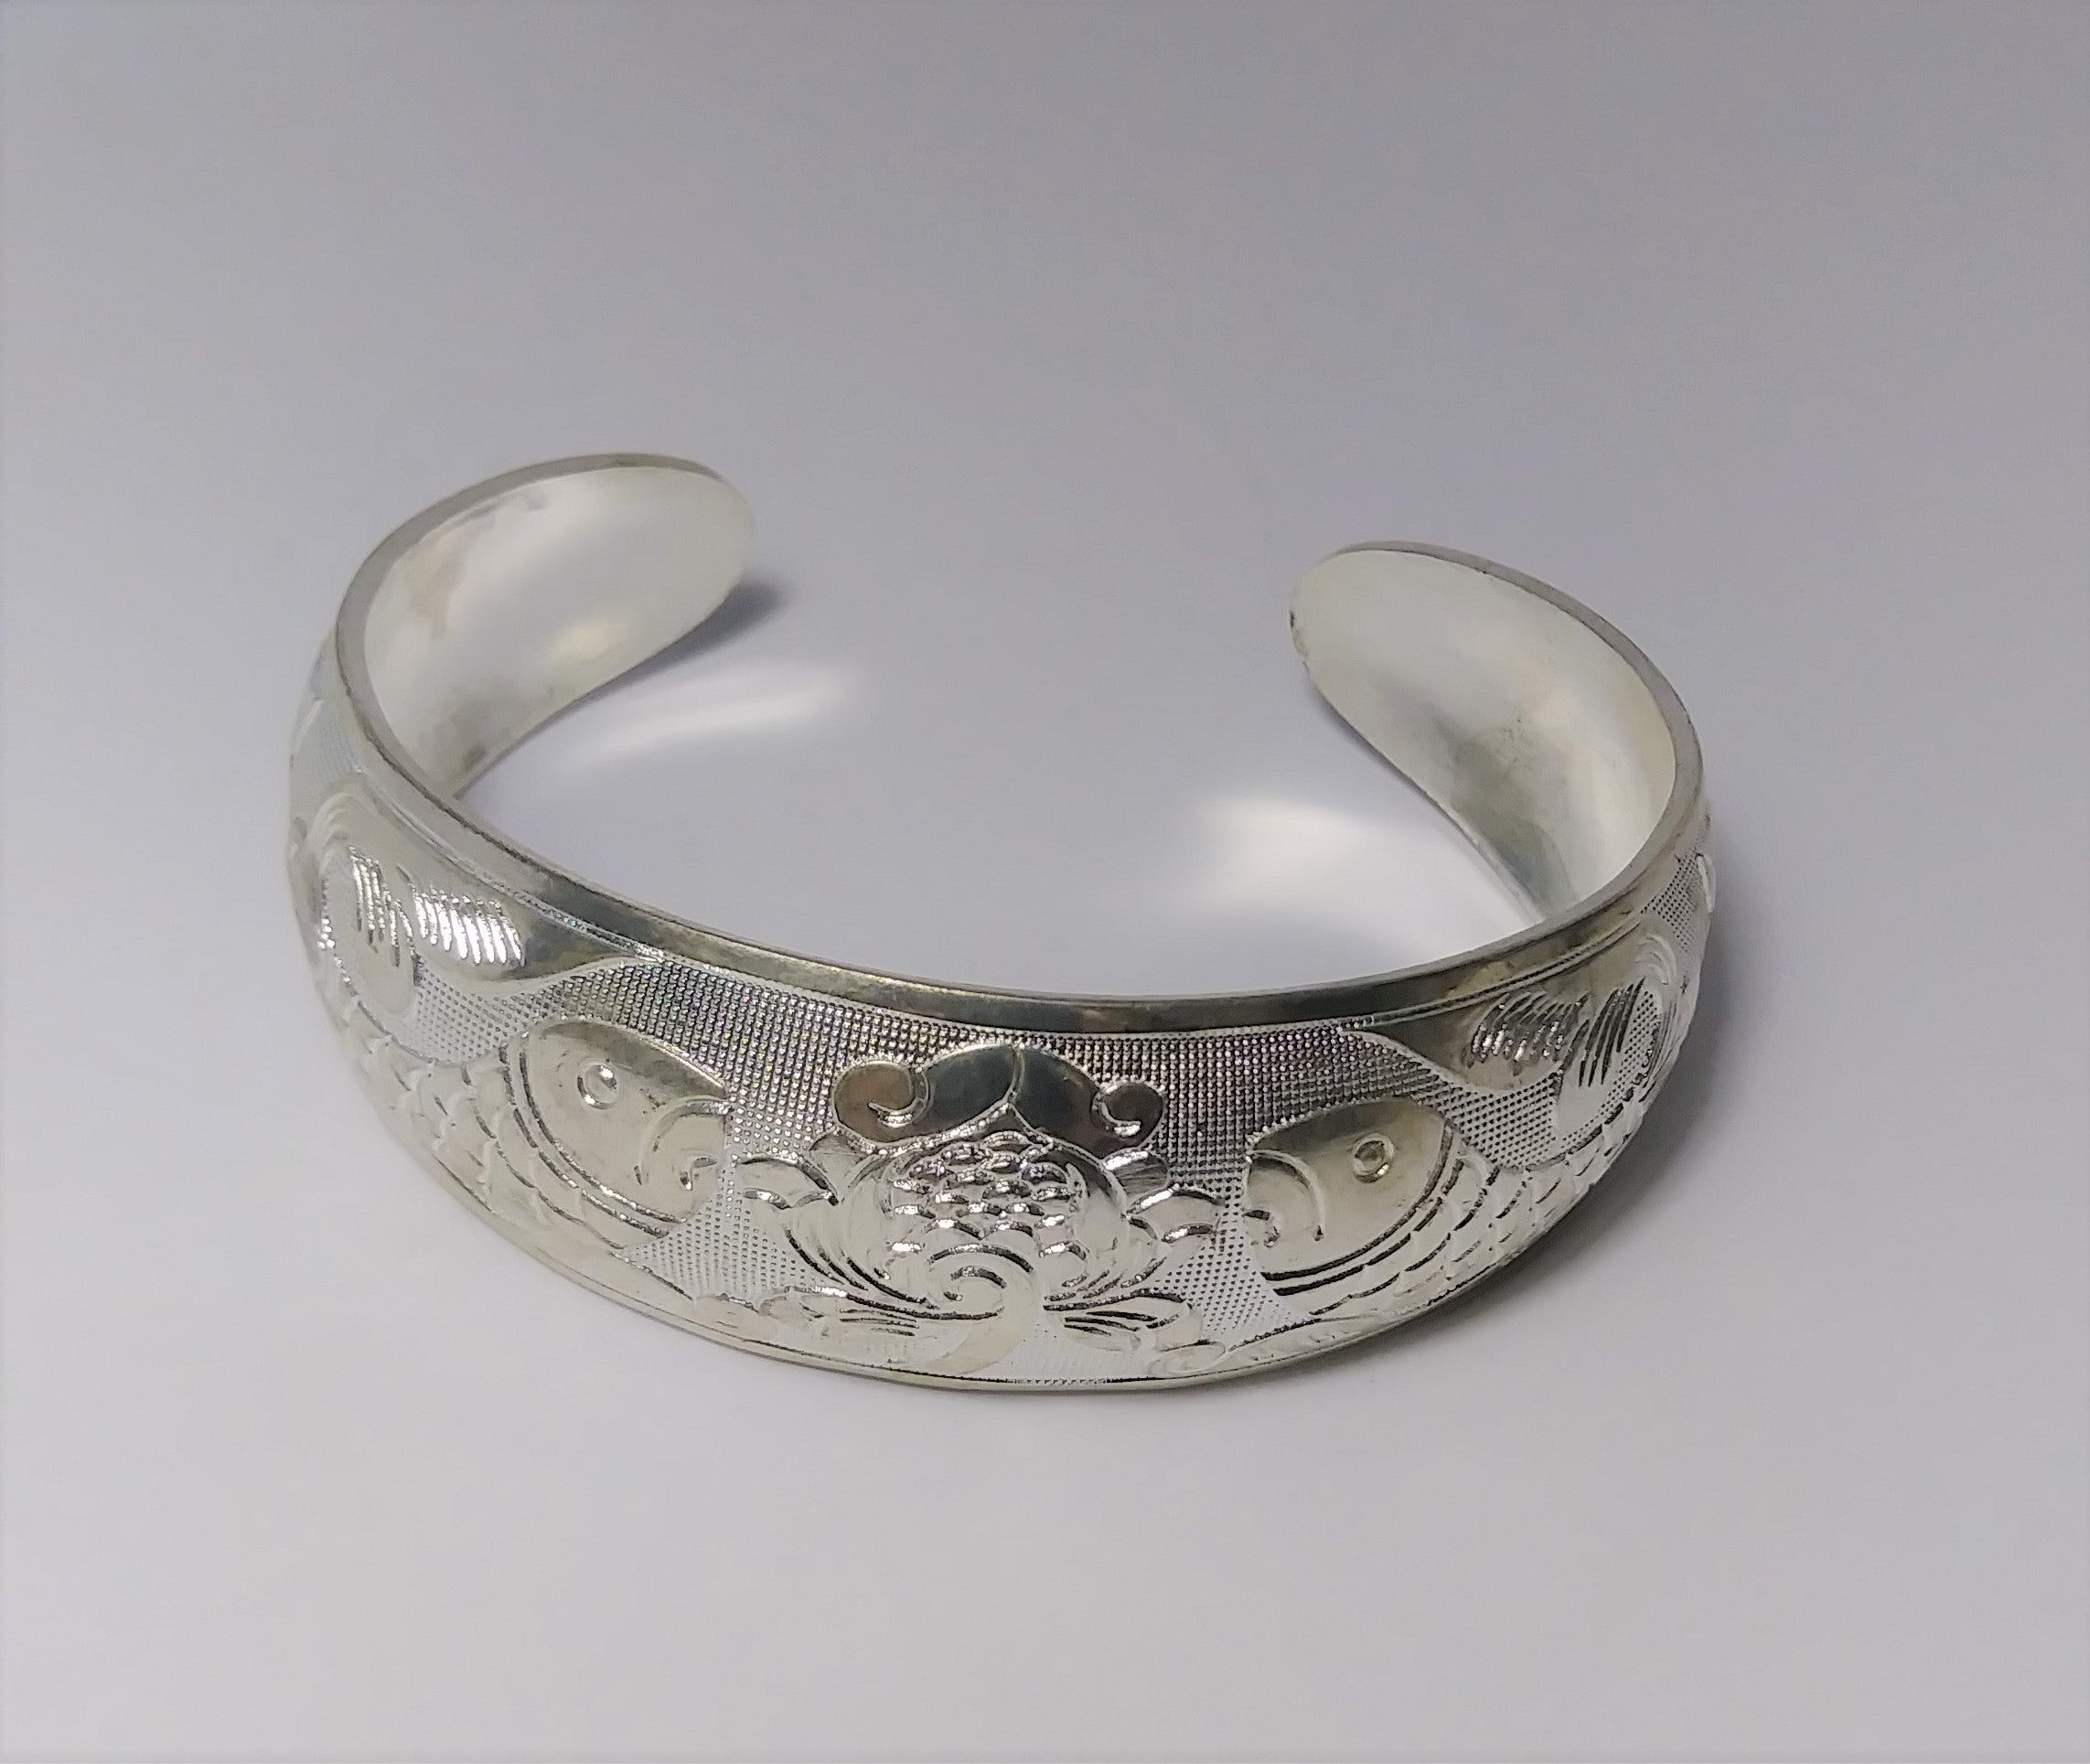 Precious Sterling silver artistic carved bangle